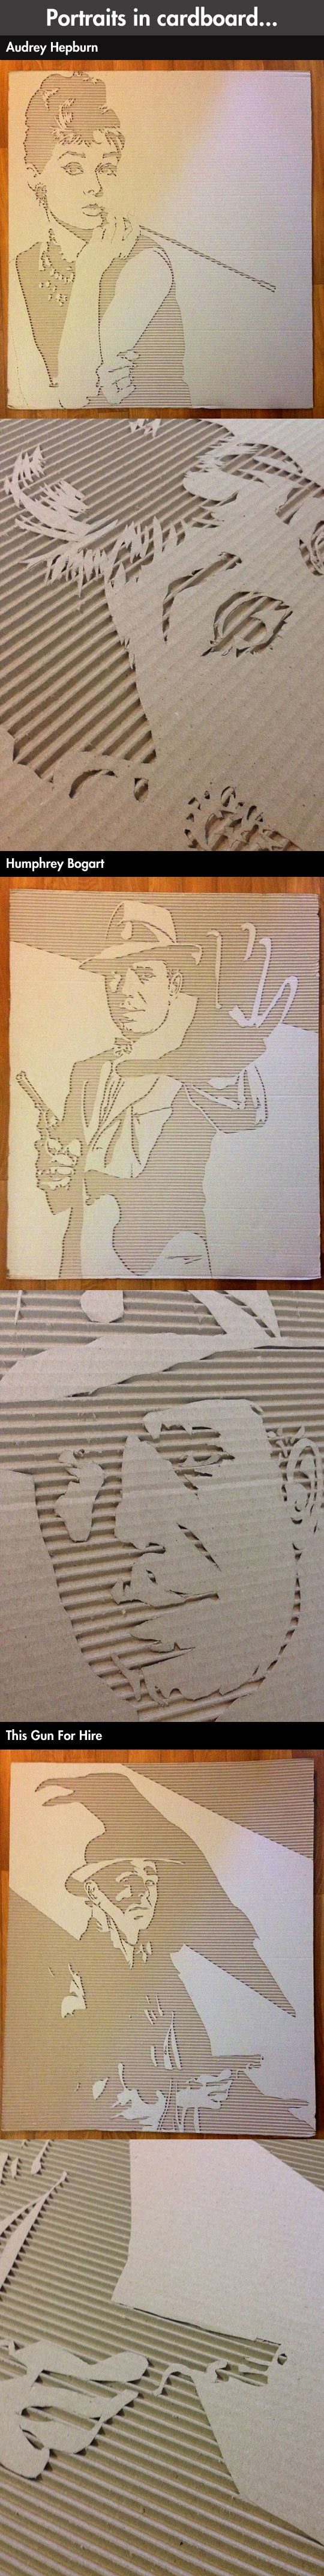 Carving Portraits Into Cardboard